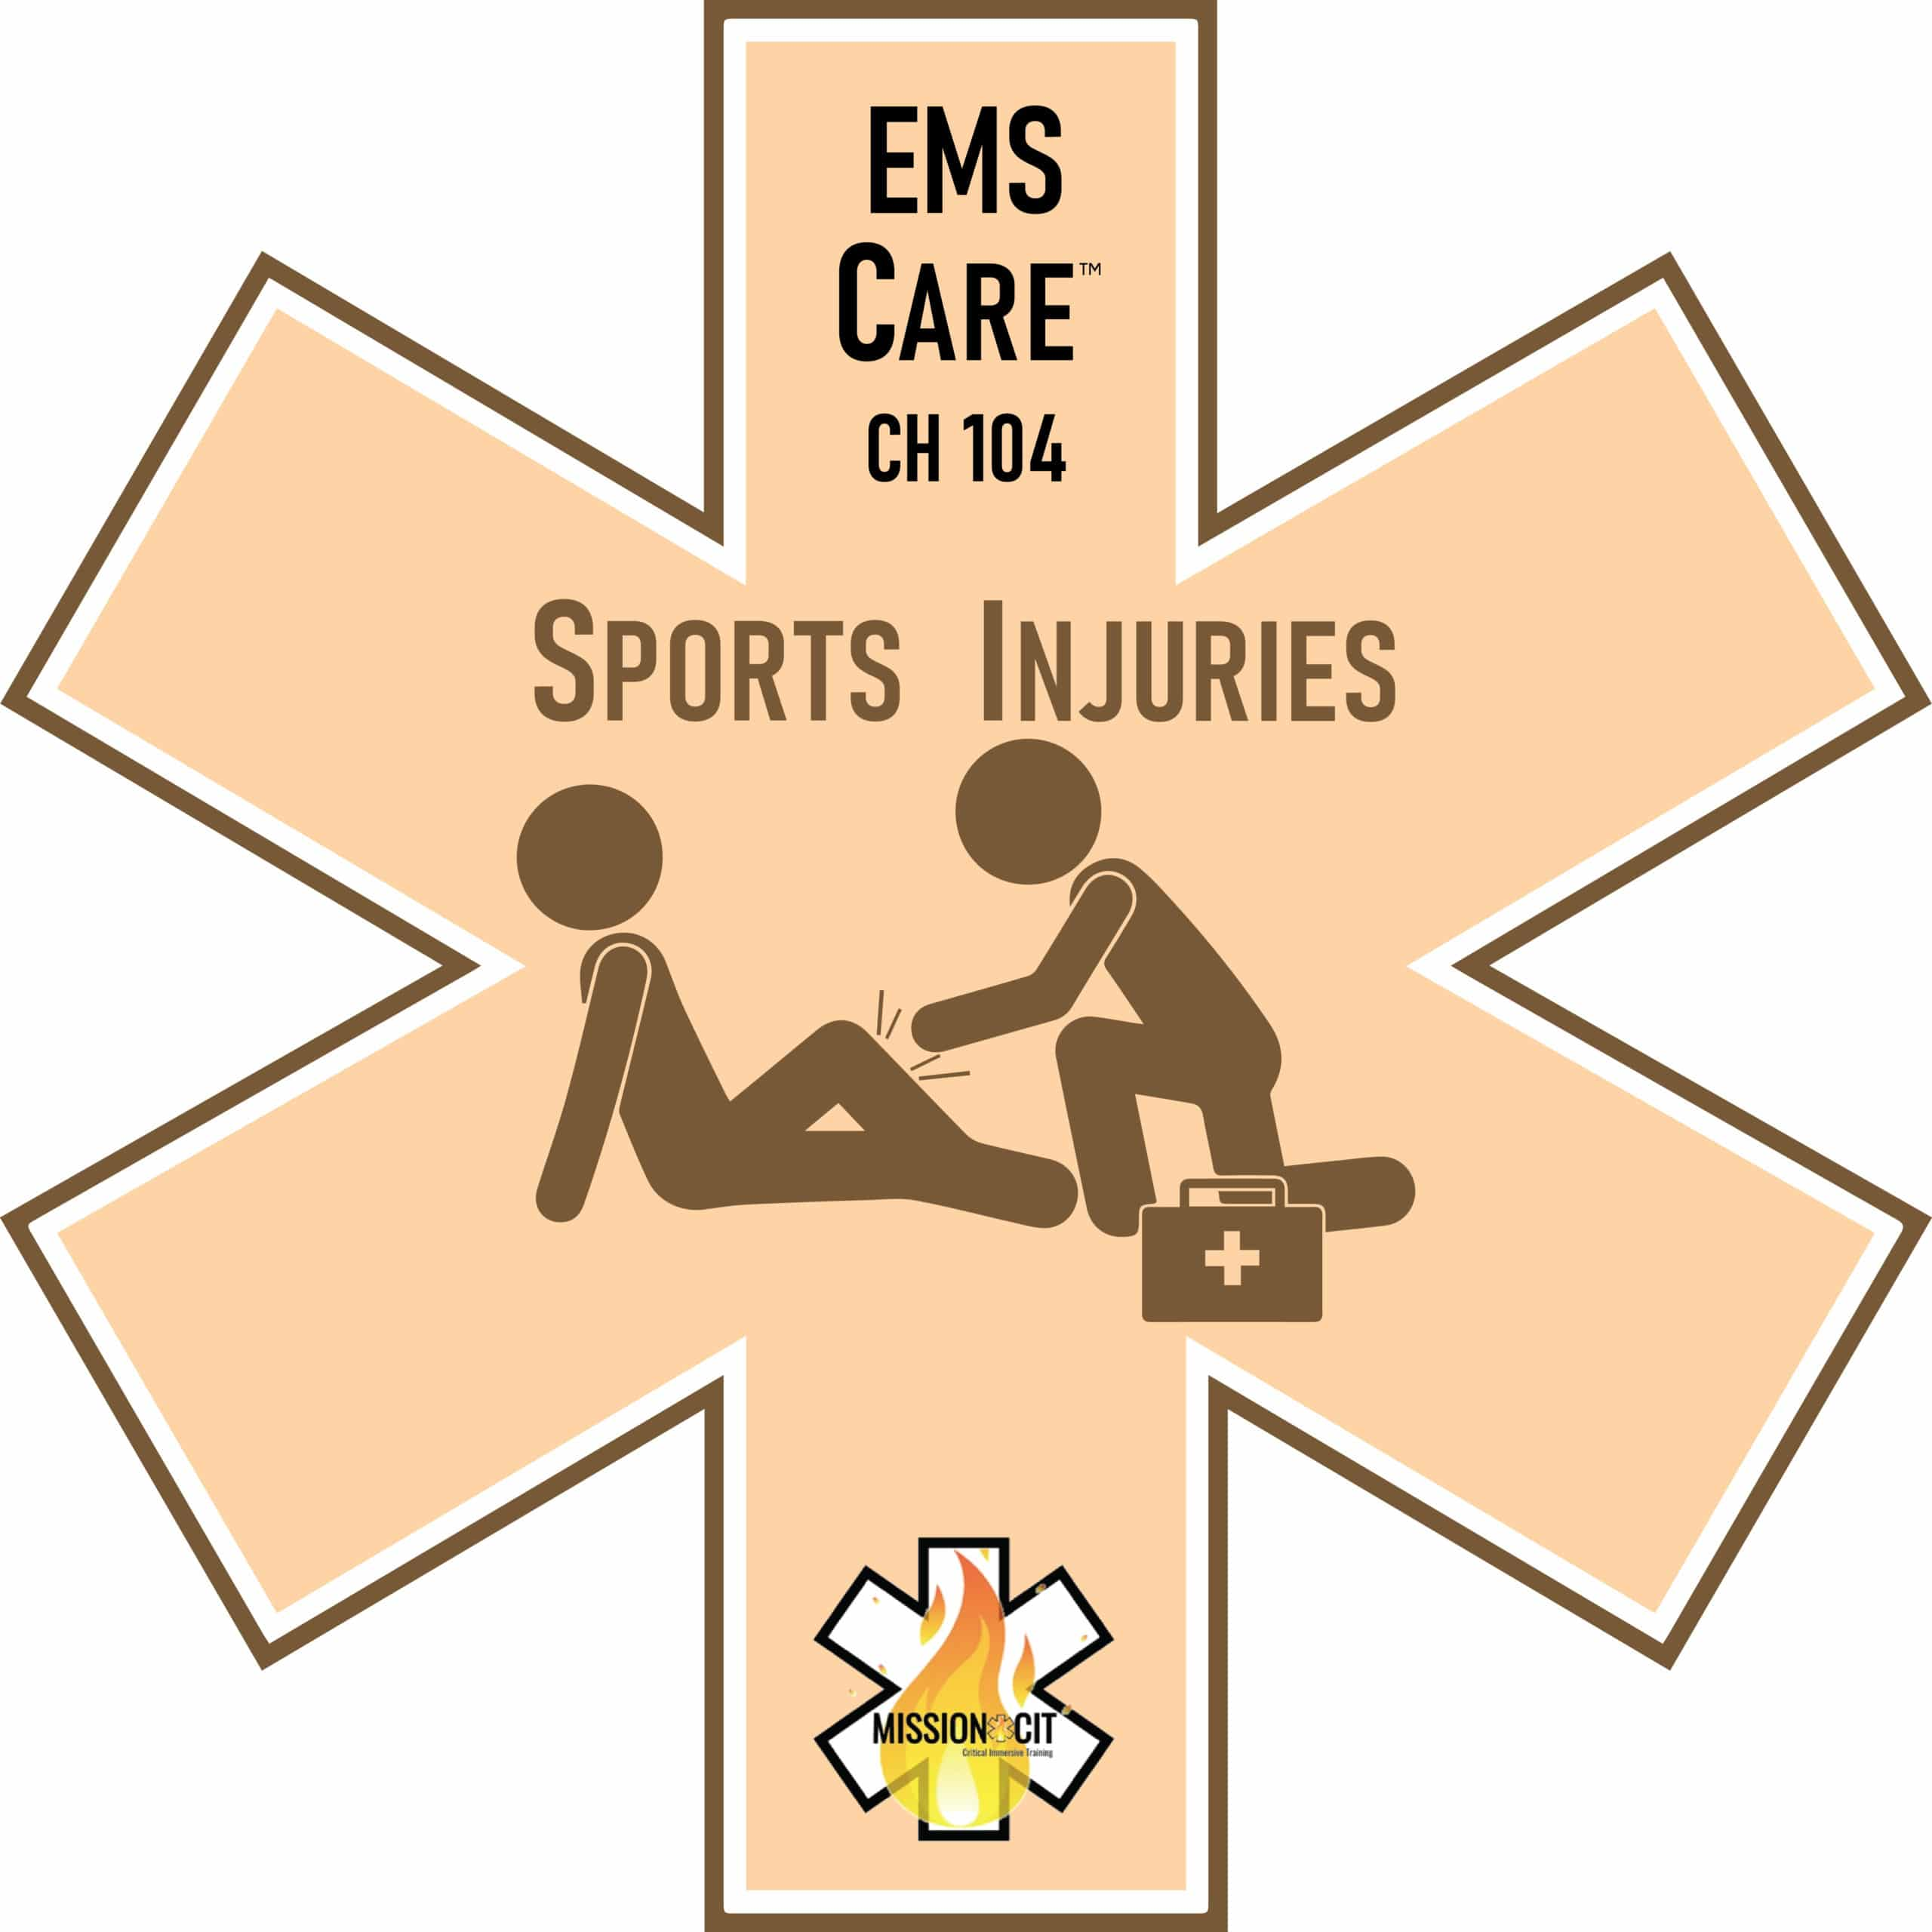 EMS Care Chapter 104 | Sports Injuries